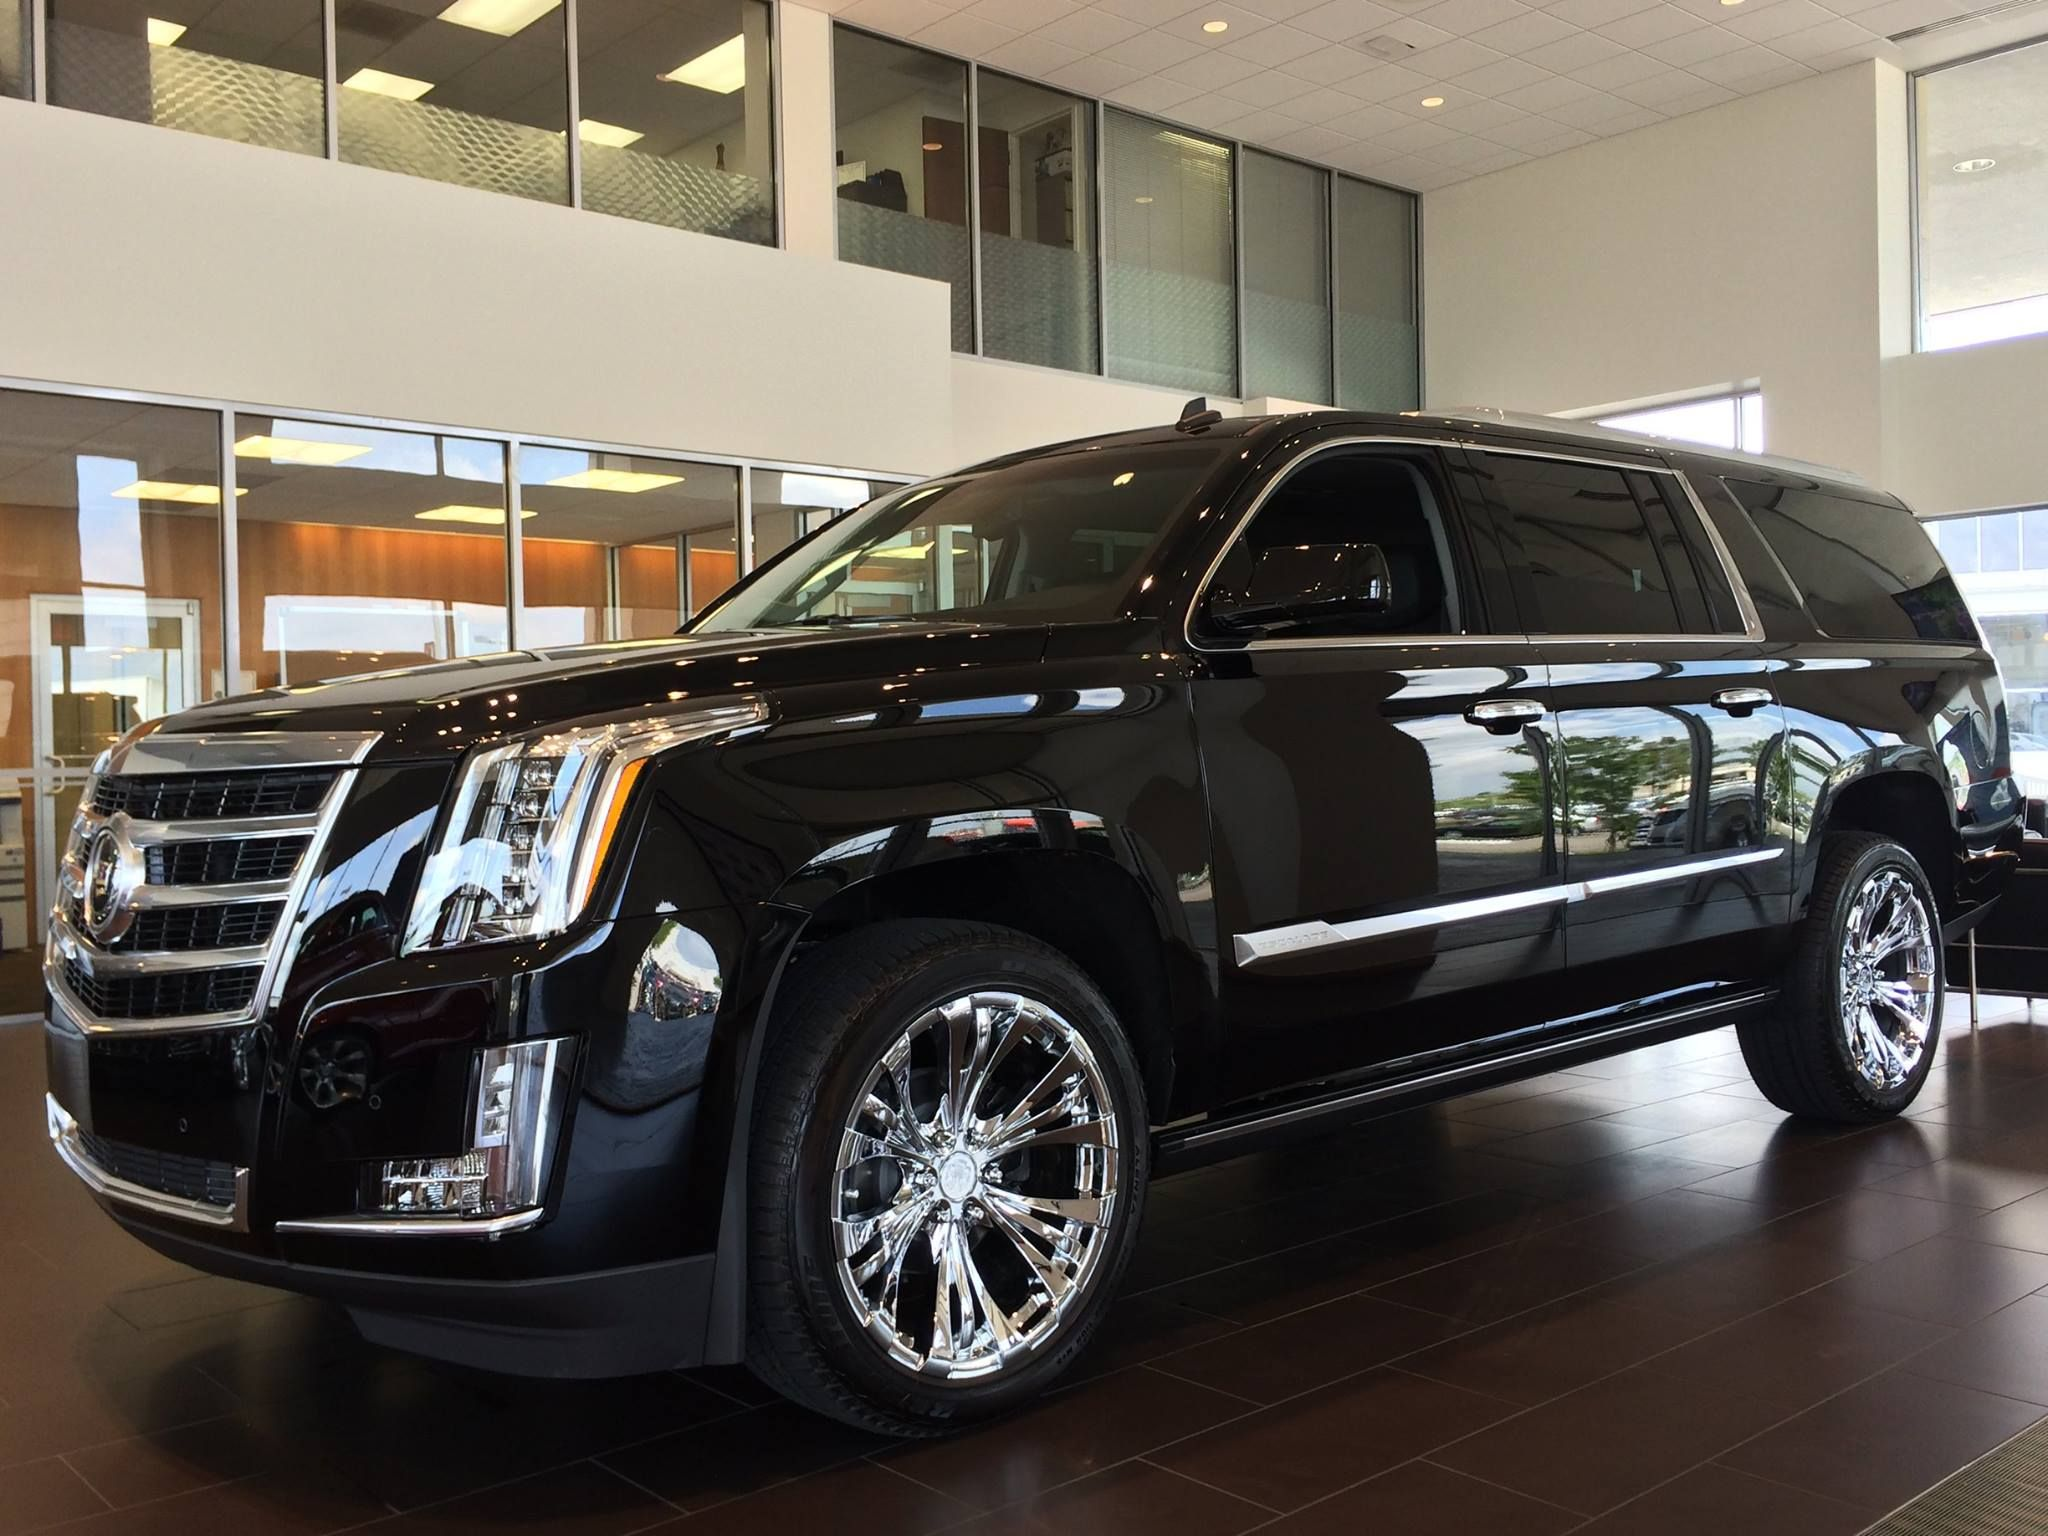 gm_parts s photo cadillac escalade cadillac pinterest cadillac escalade cadillac and super car